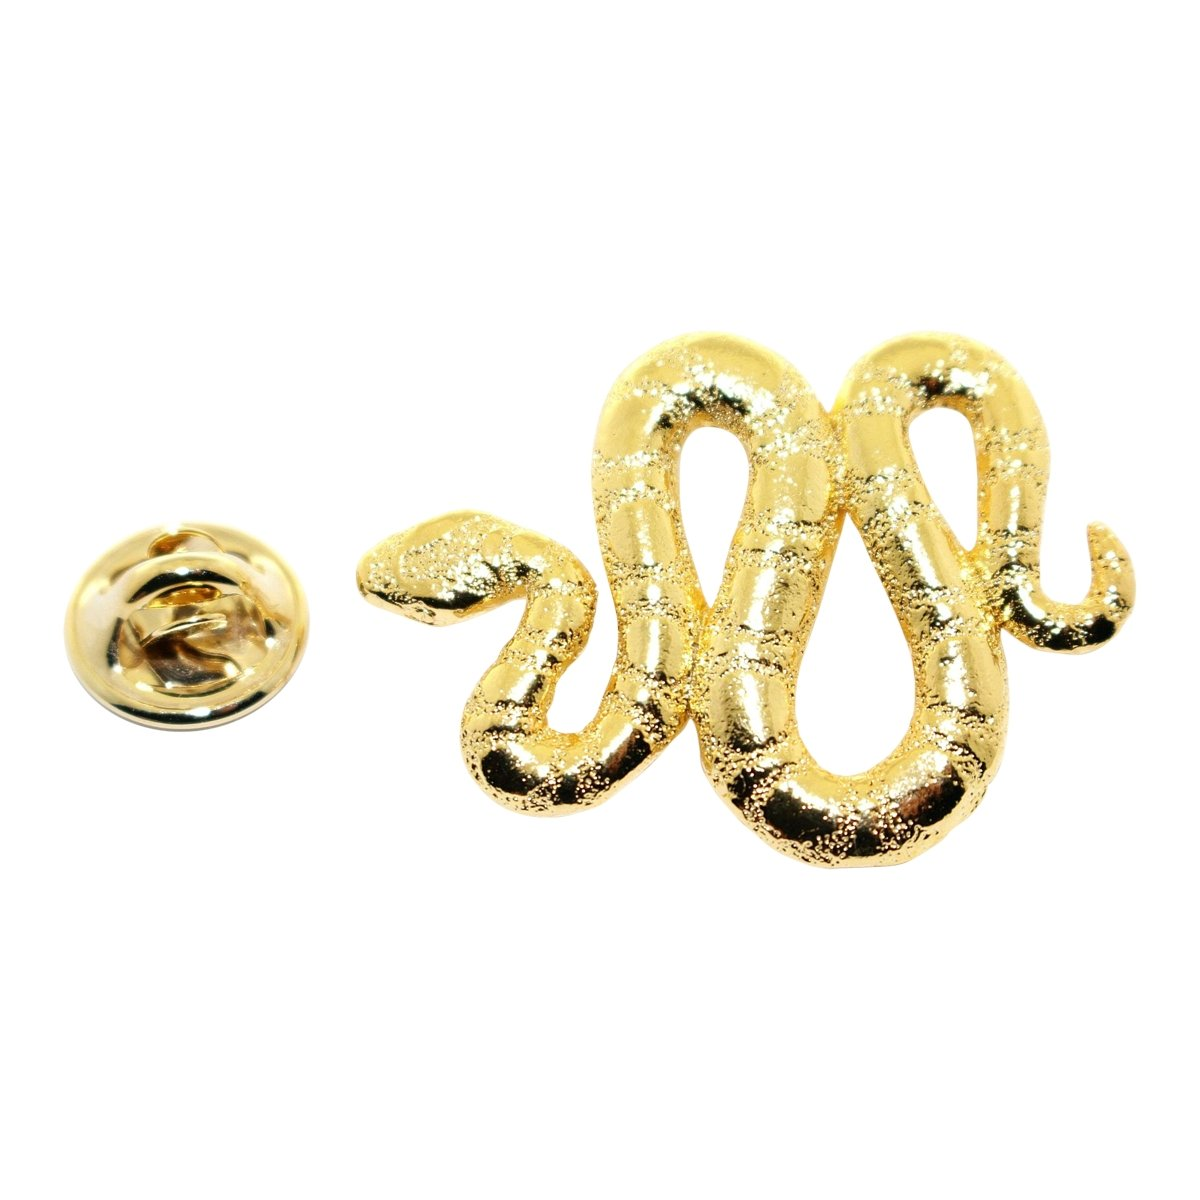 Snake Pin ~ 24K Gold ~ Lapel Pin ~ Sarah's Treats & Treasures